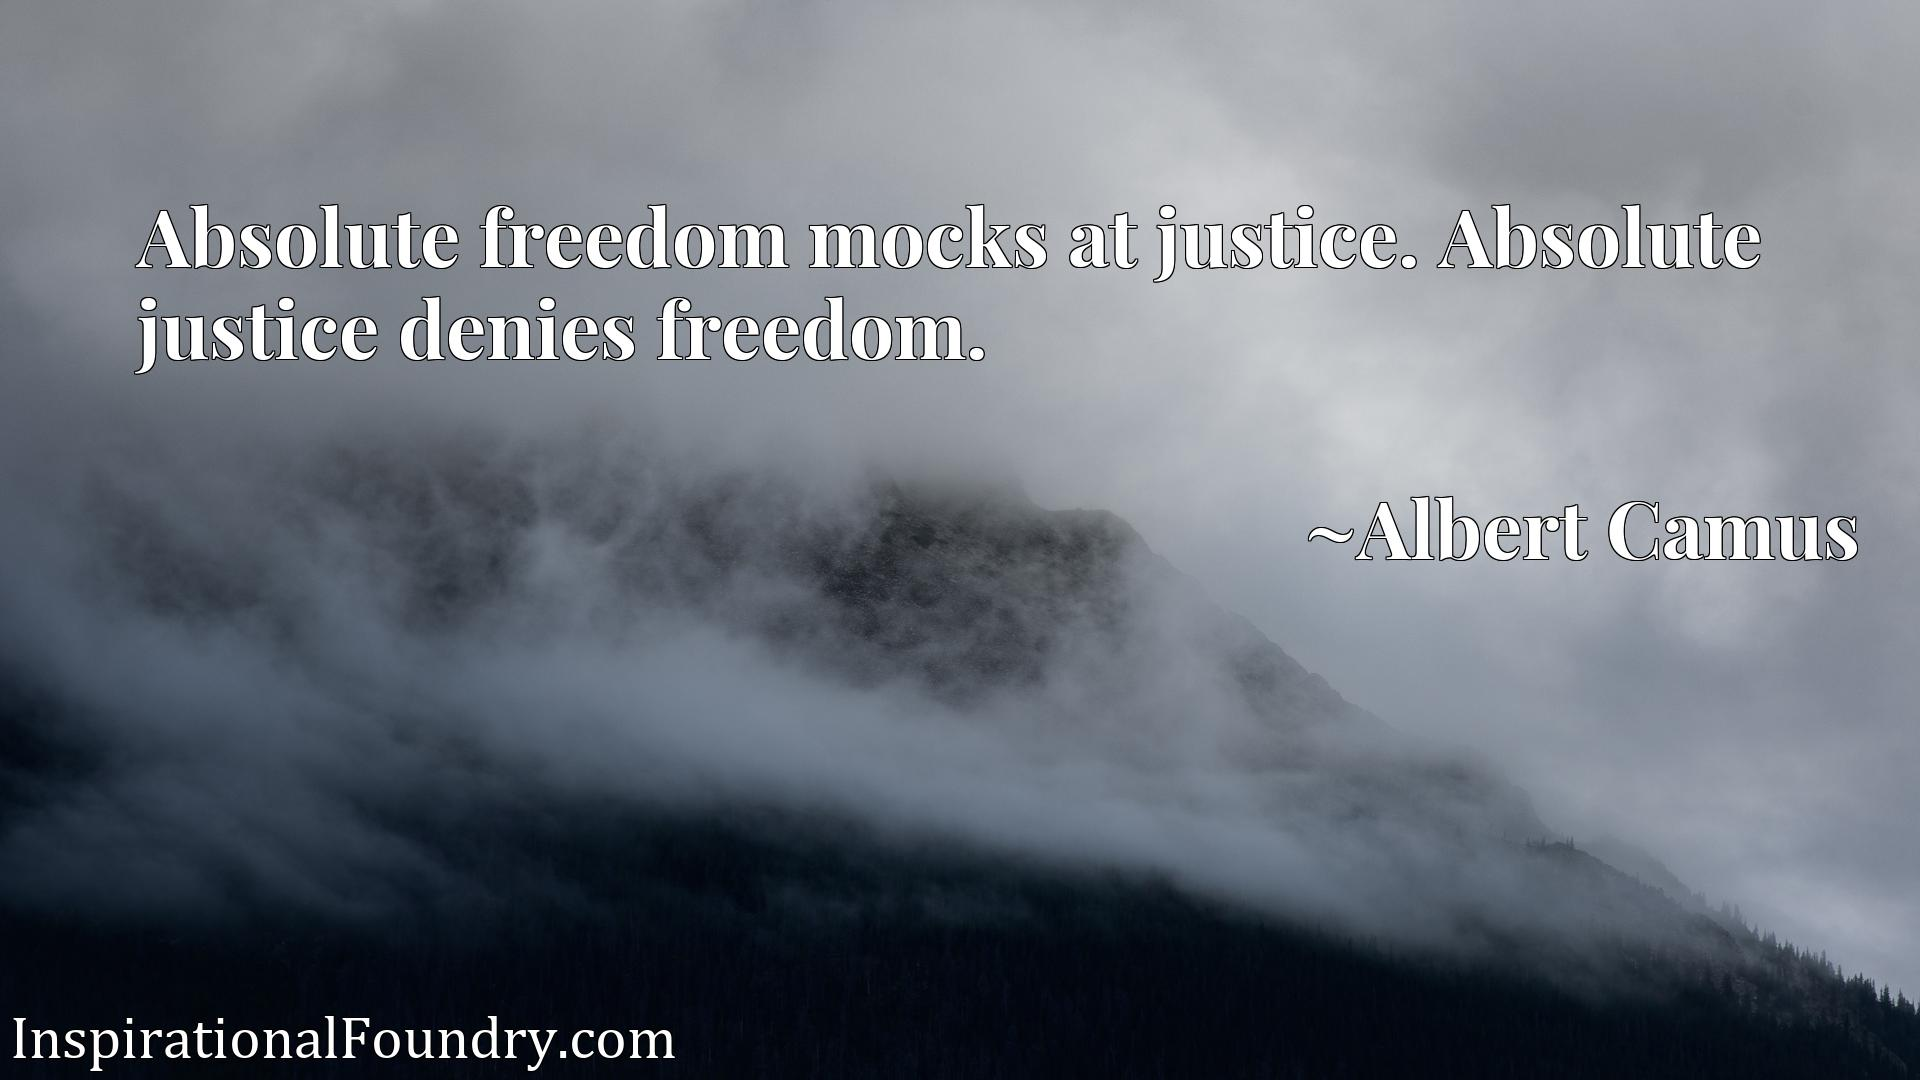 Absolute freedom mocks at justice. Absolute justice denies freedom.